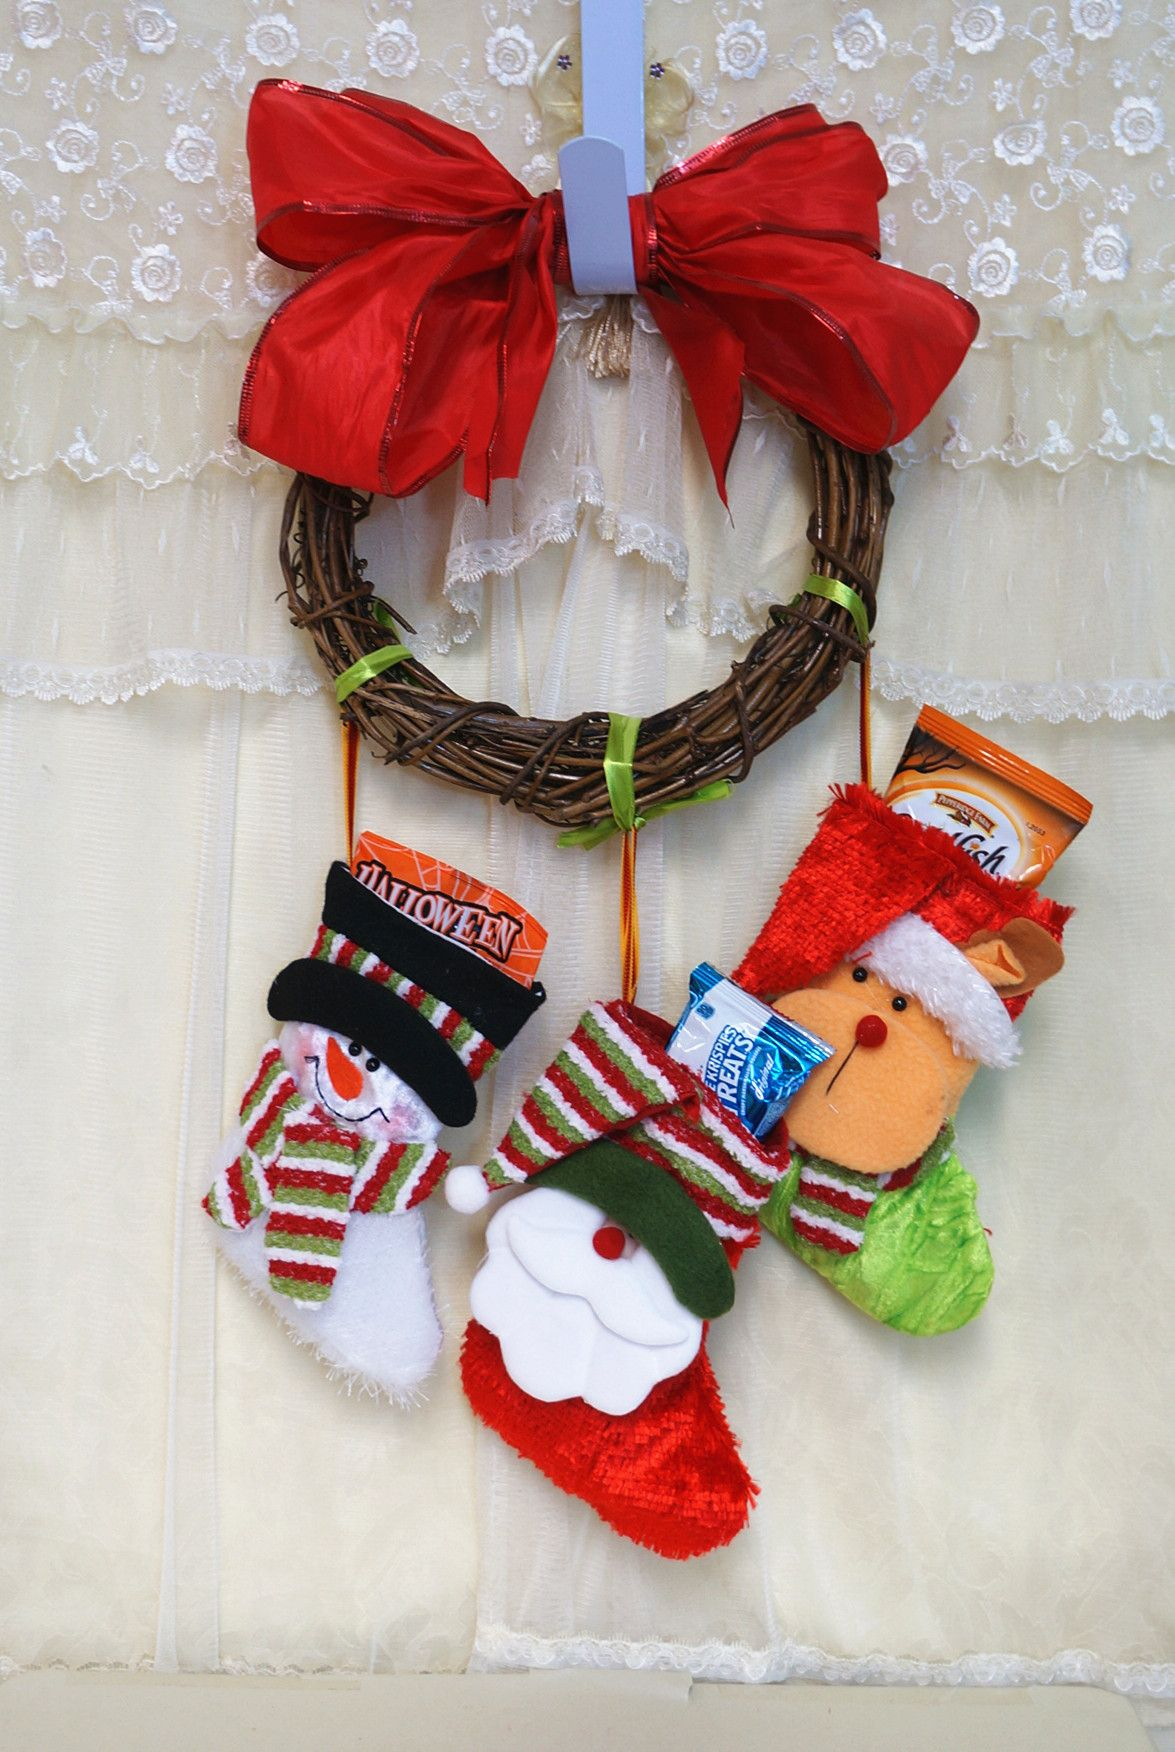 Candy Bags With Wreath For Christmas